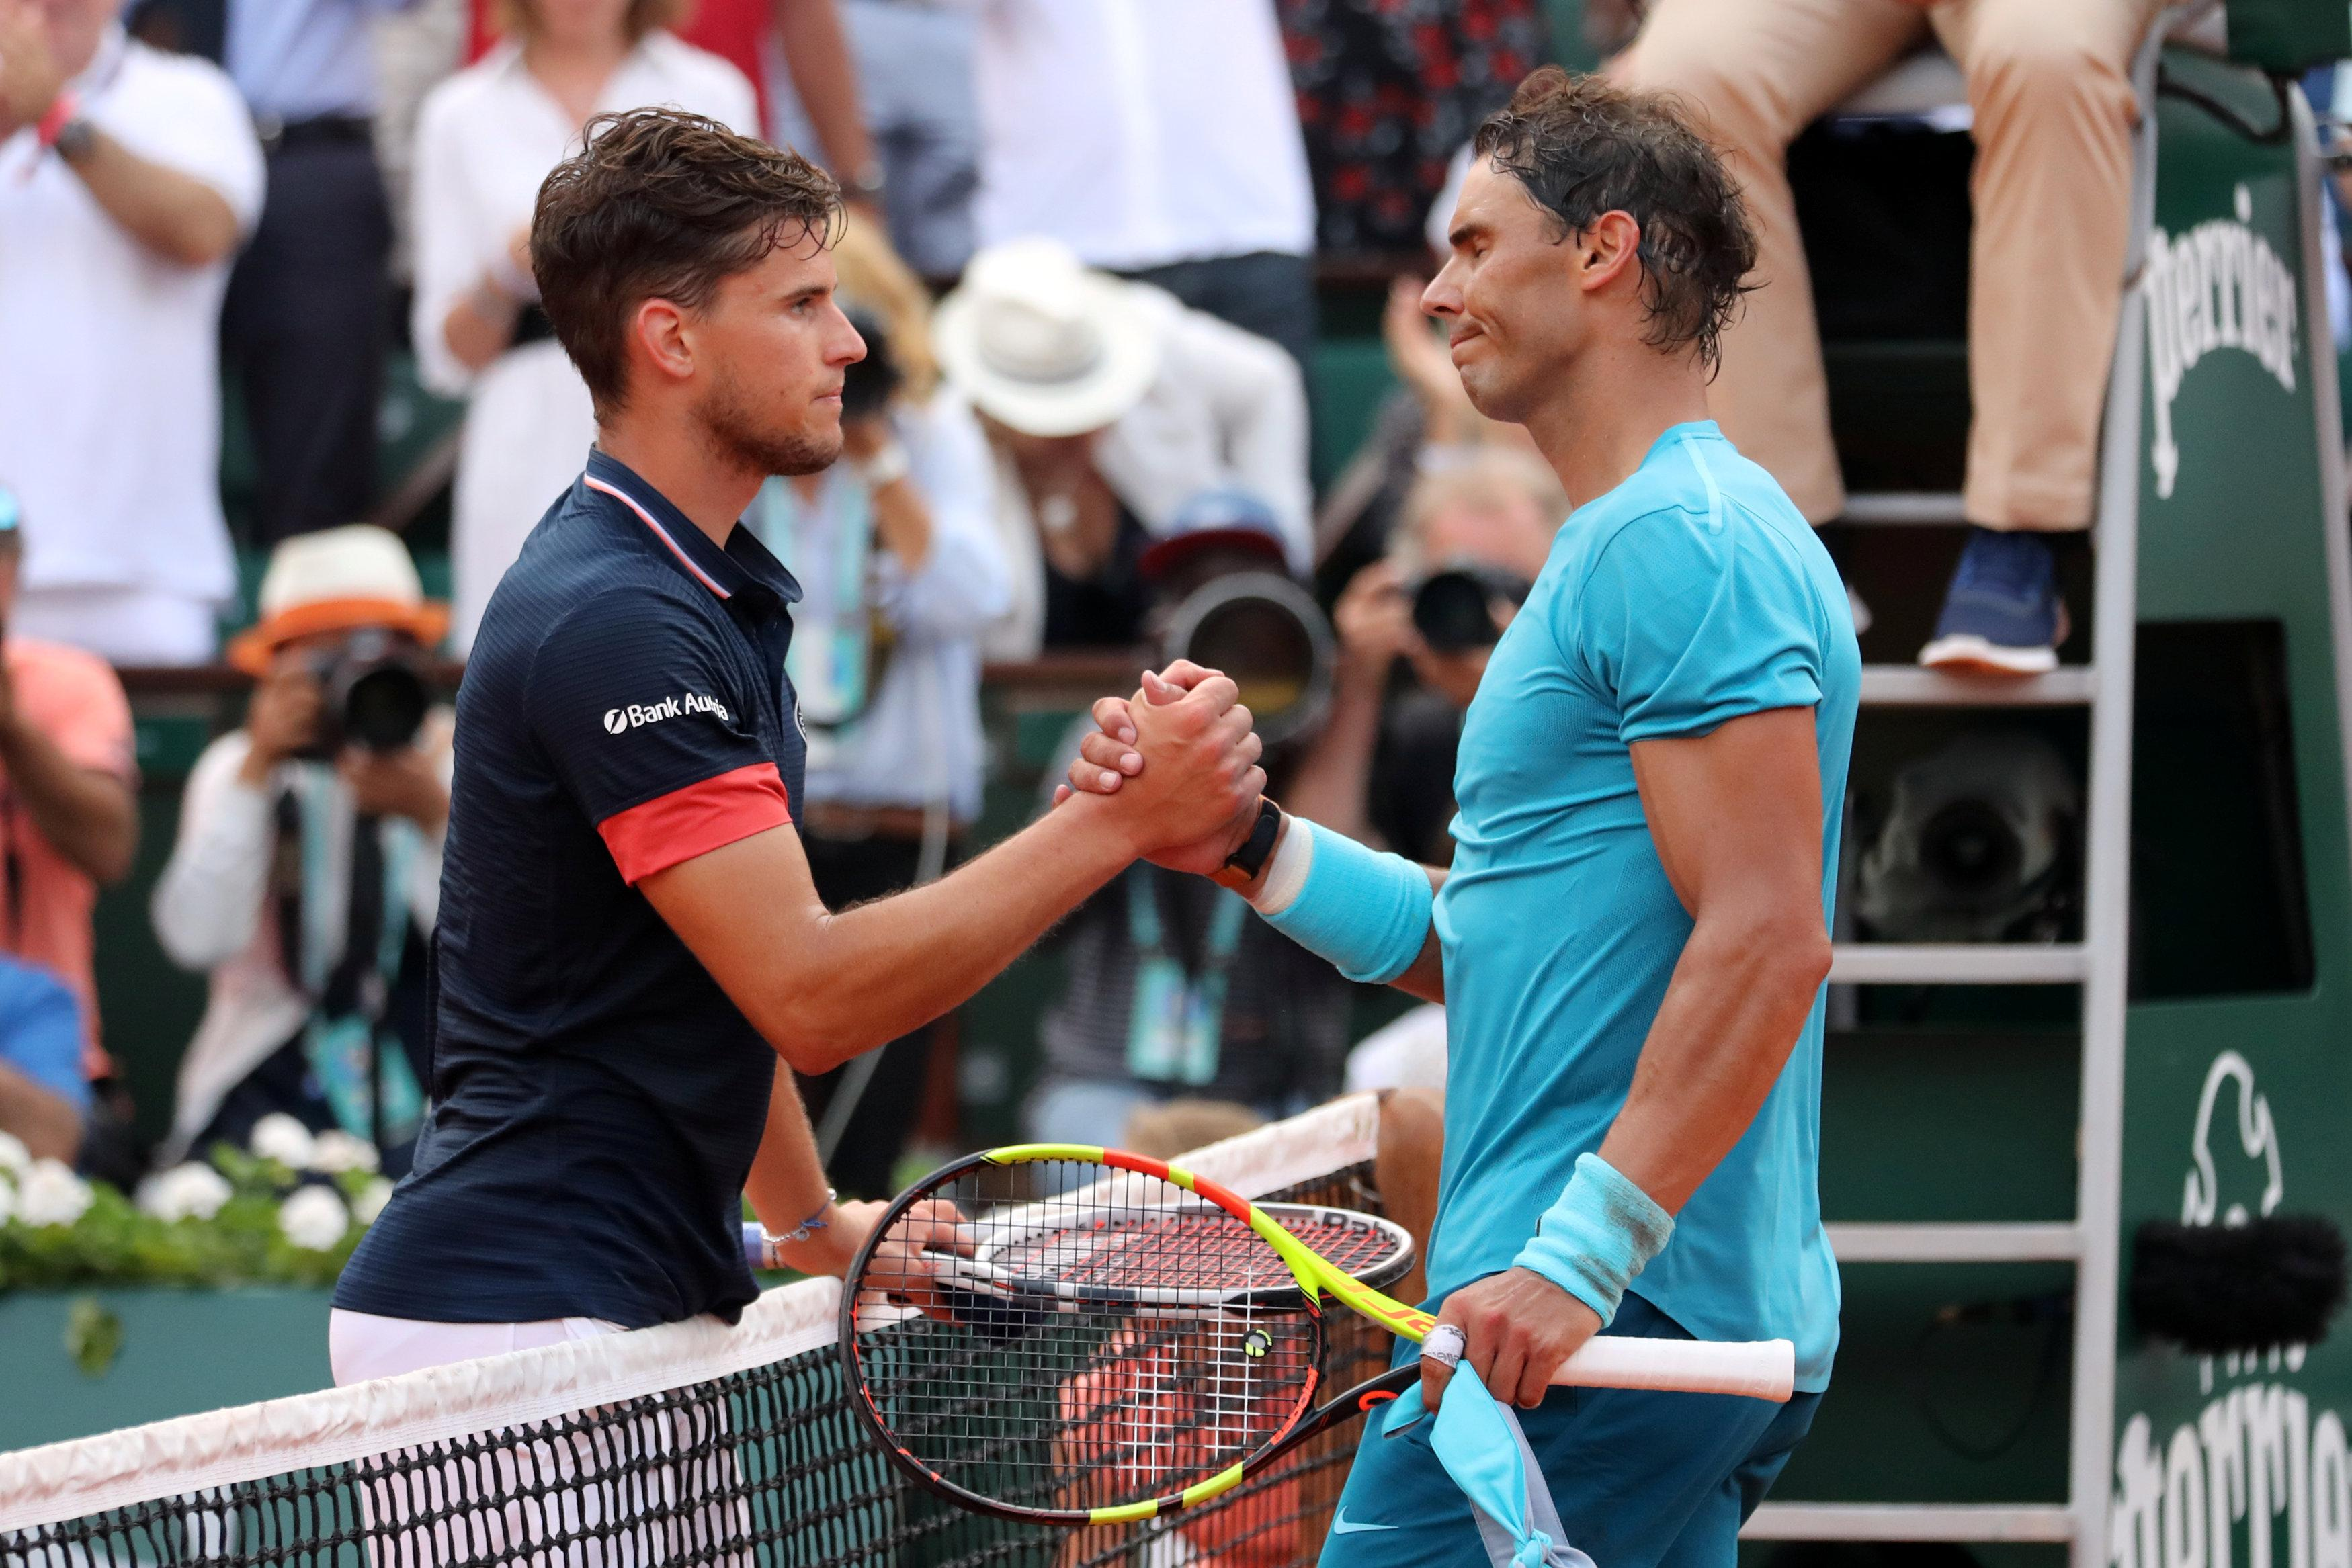 Nadal congratulated Thiem and called him an aggressive, tough opponent who he thought would win at Roland Garros in the future